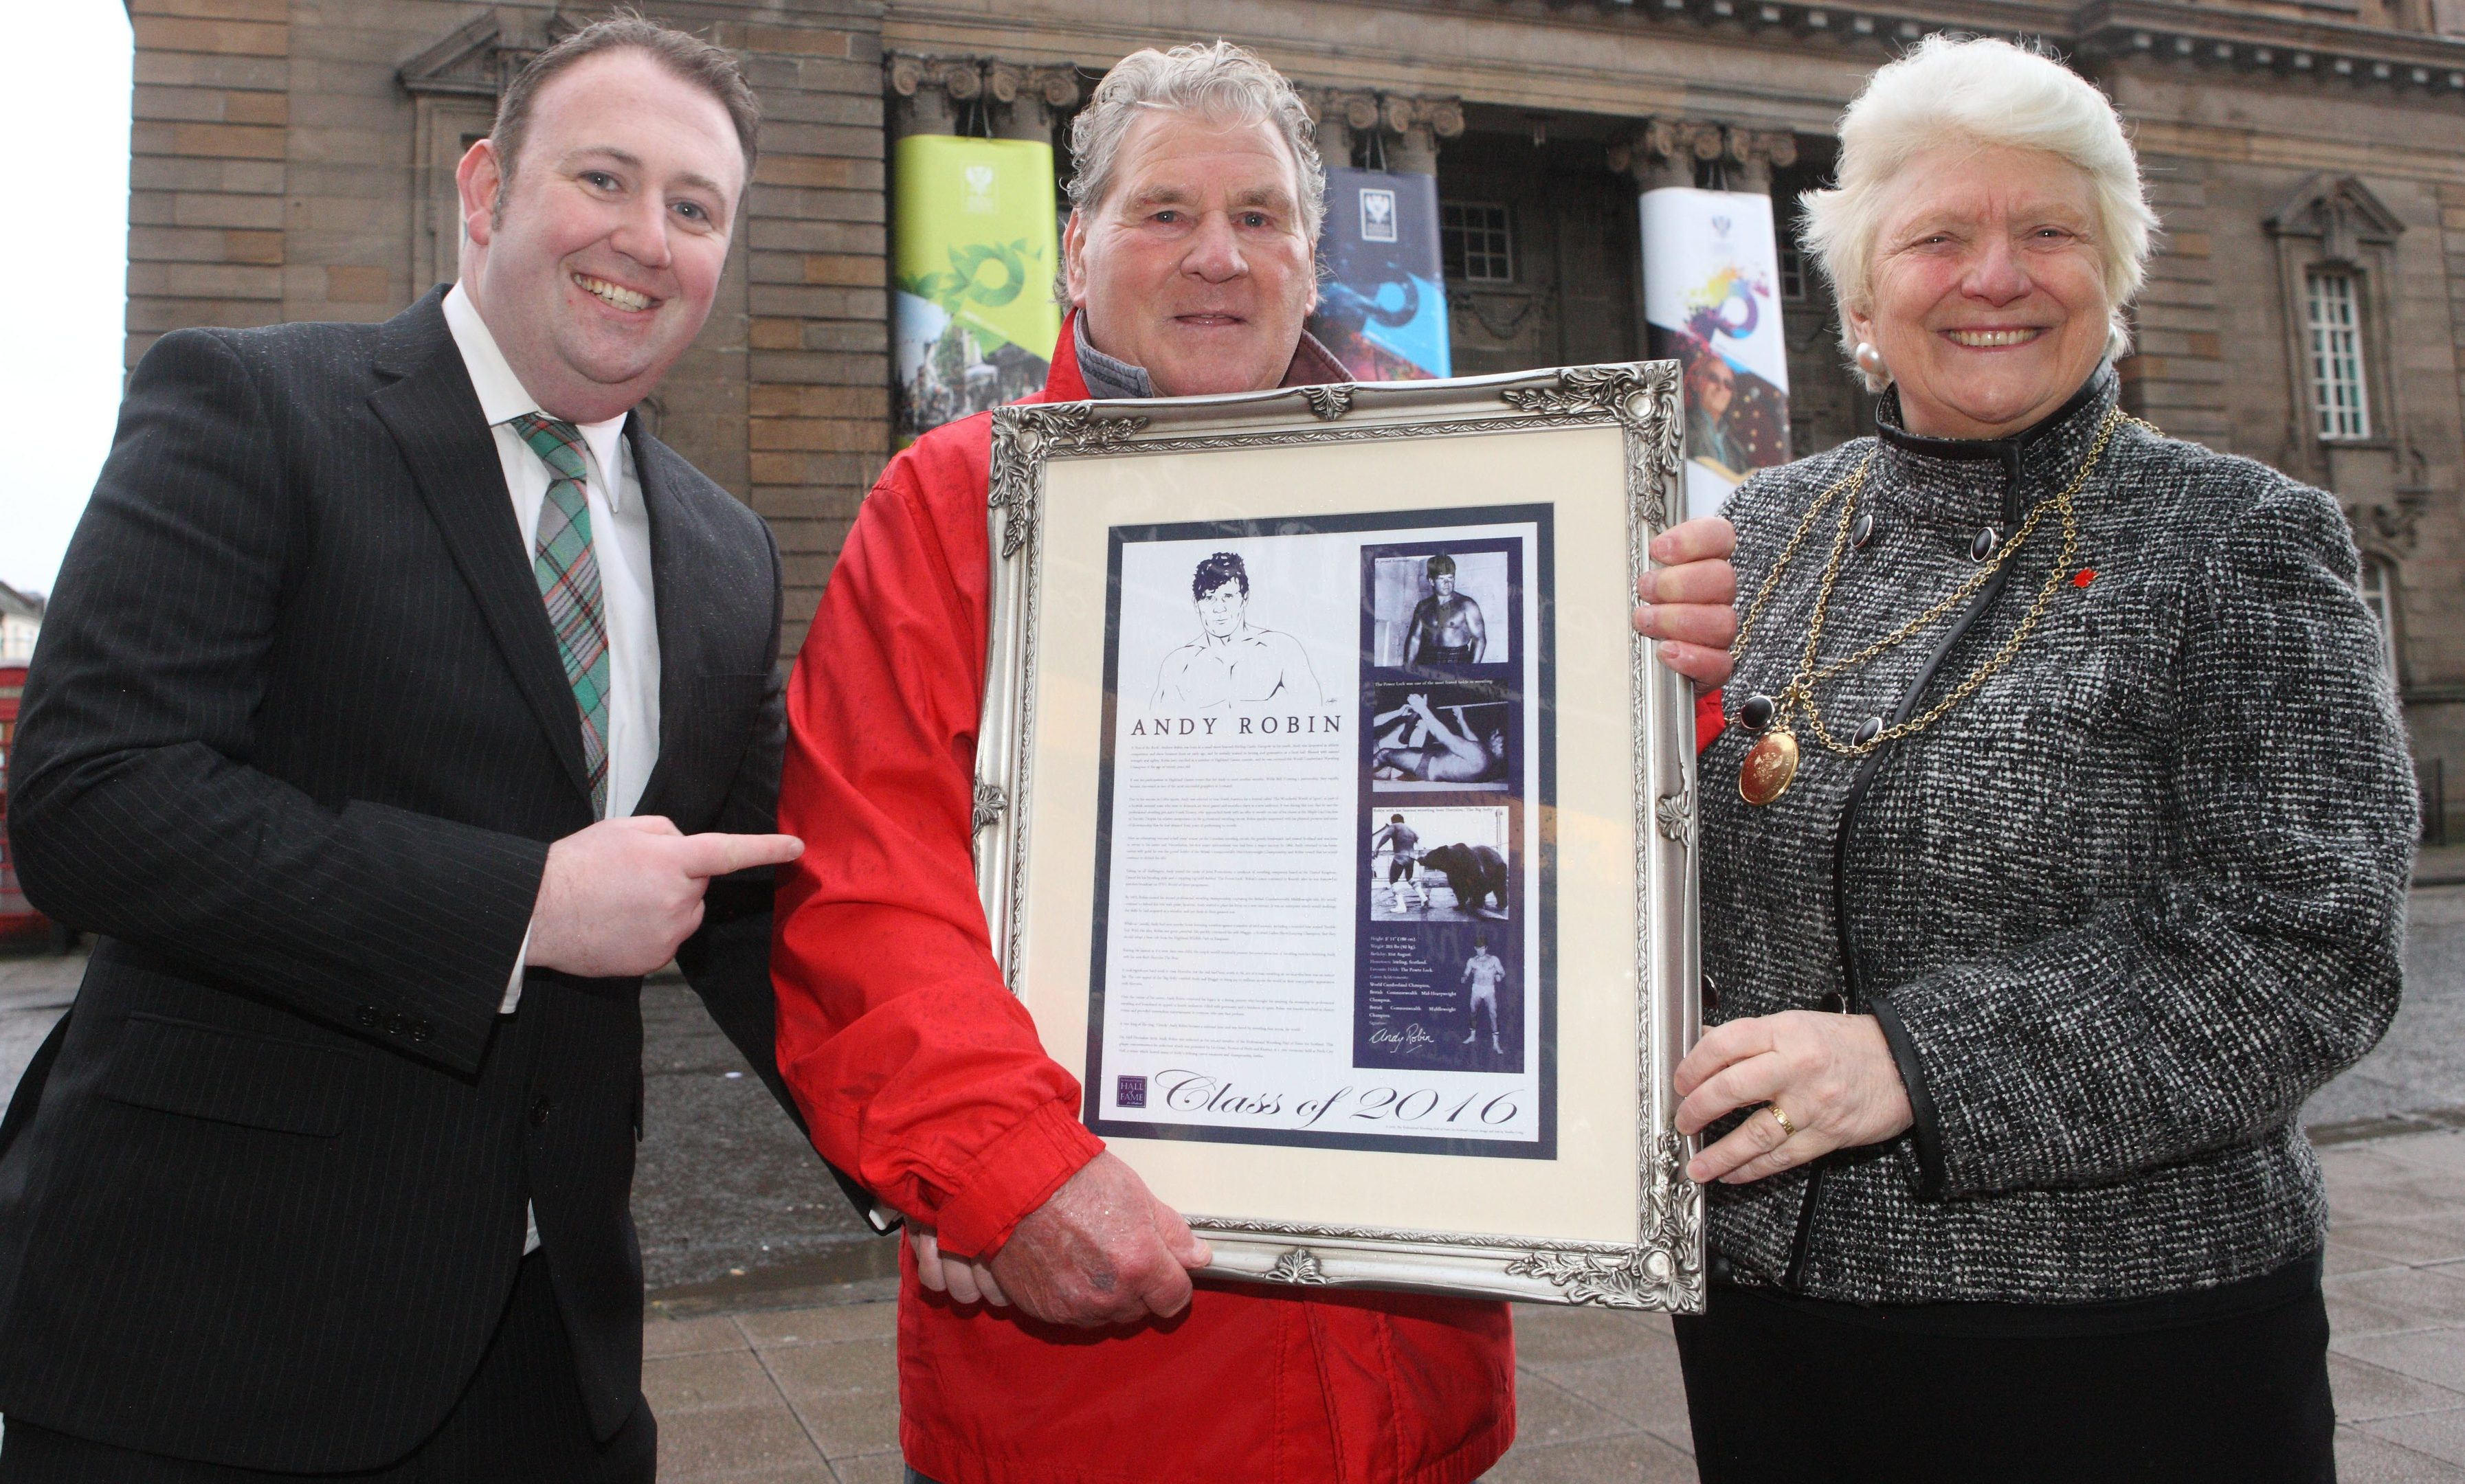 Andy Robin with (left) founder of the Professional Wrestling Hall of Fame Scotland Bradley Craig and (right) Perth Provost Liz Grant.